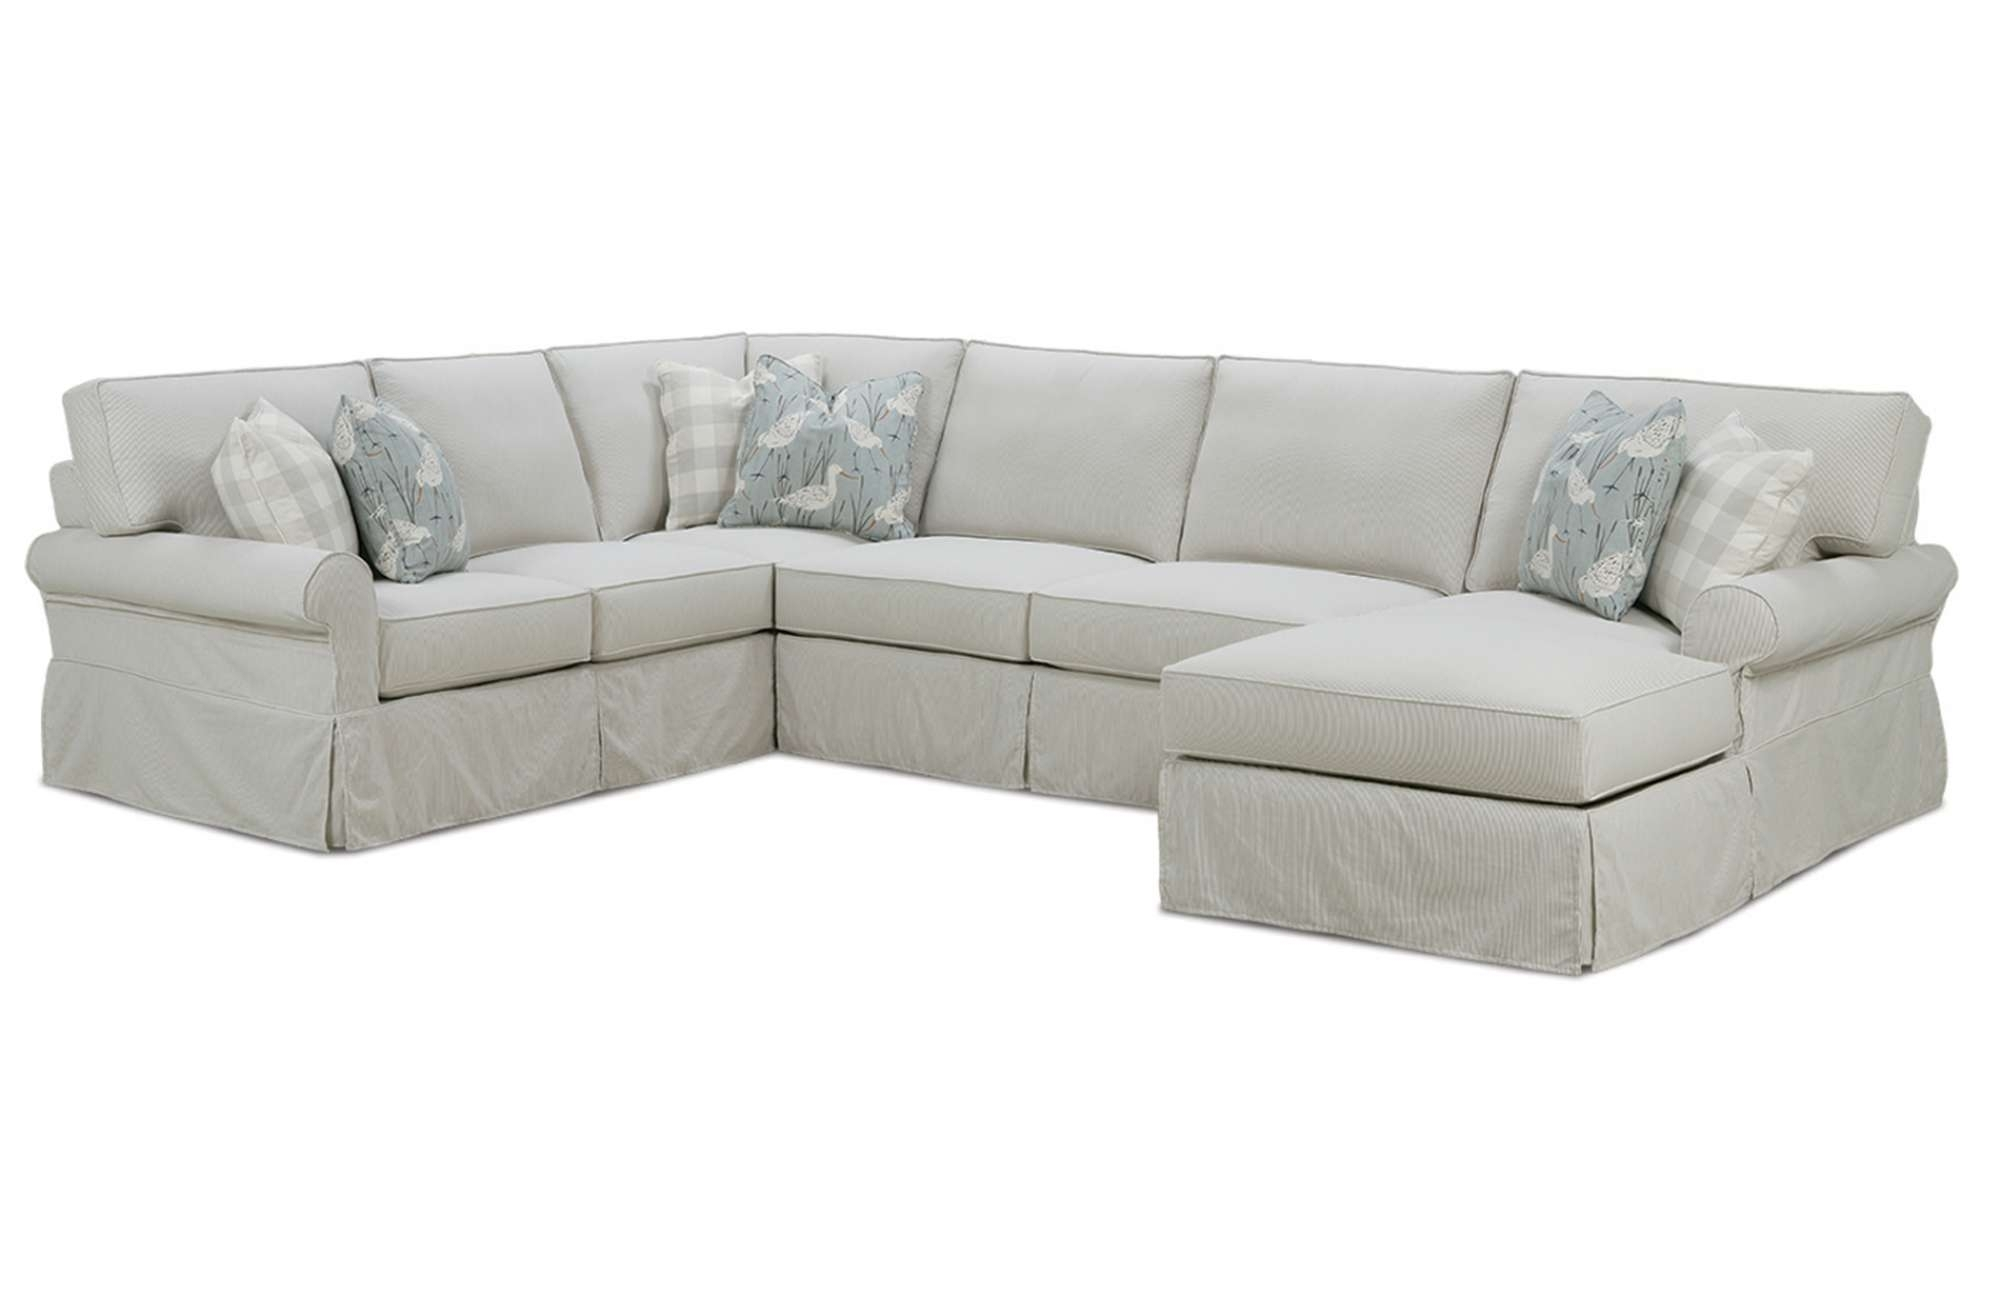 Easton Slipcover Sectionalrowe Furniture Pertaining To Furniture Row Sectional Sofas (View 6 of 10)